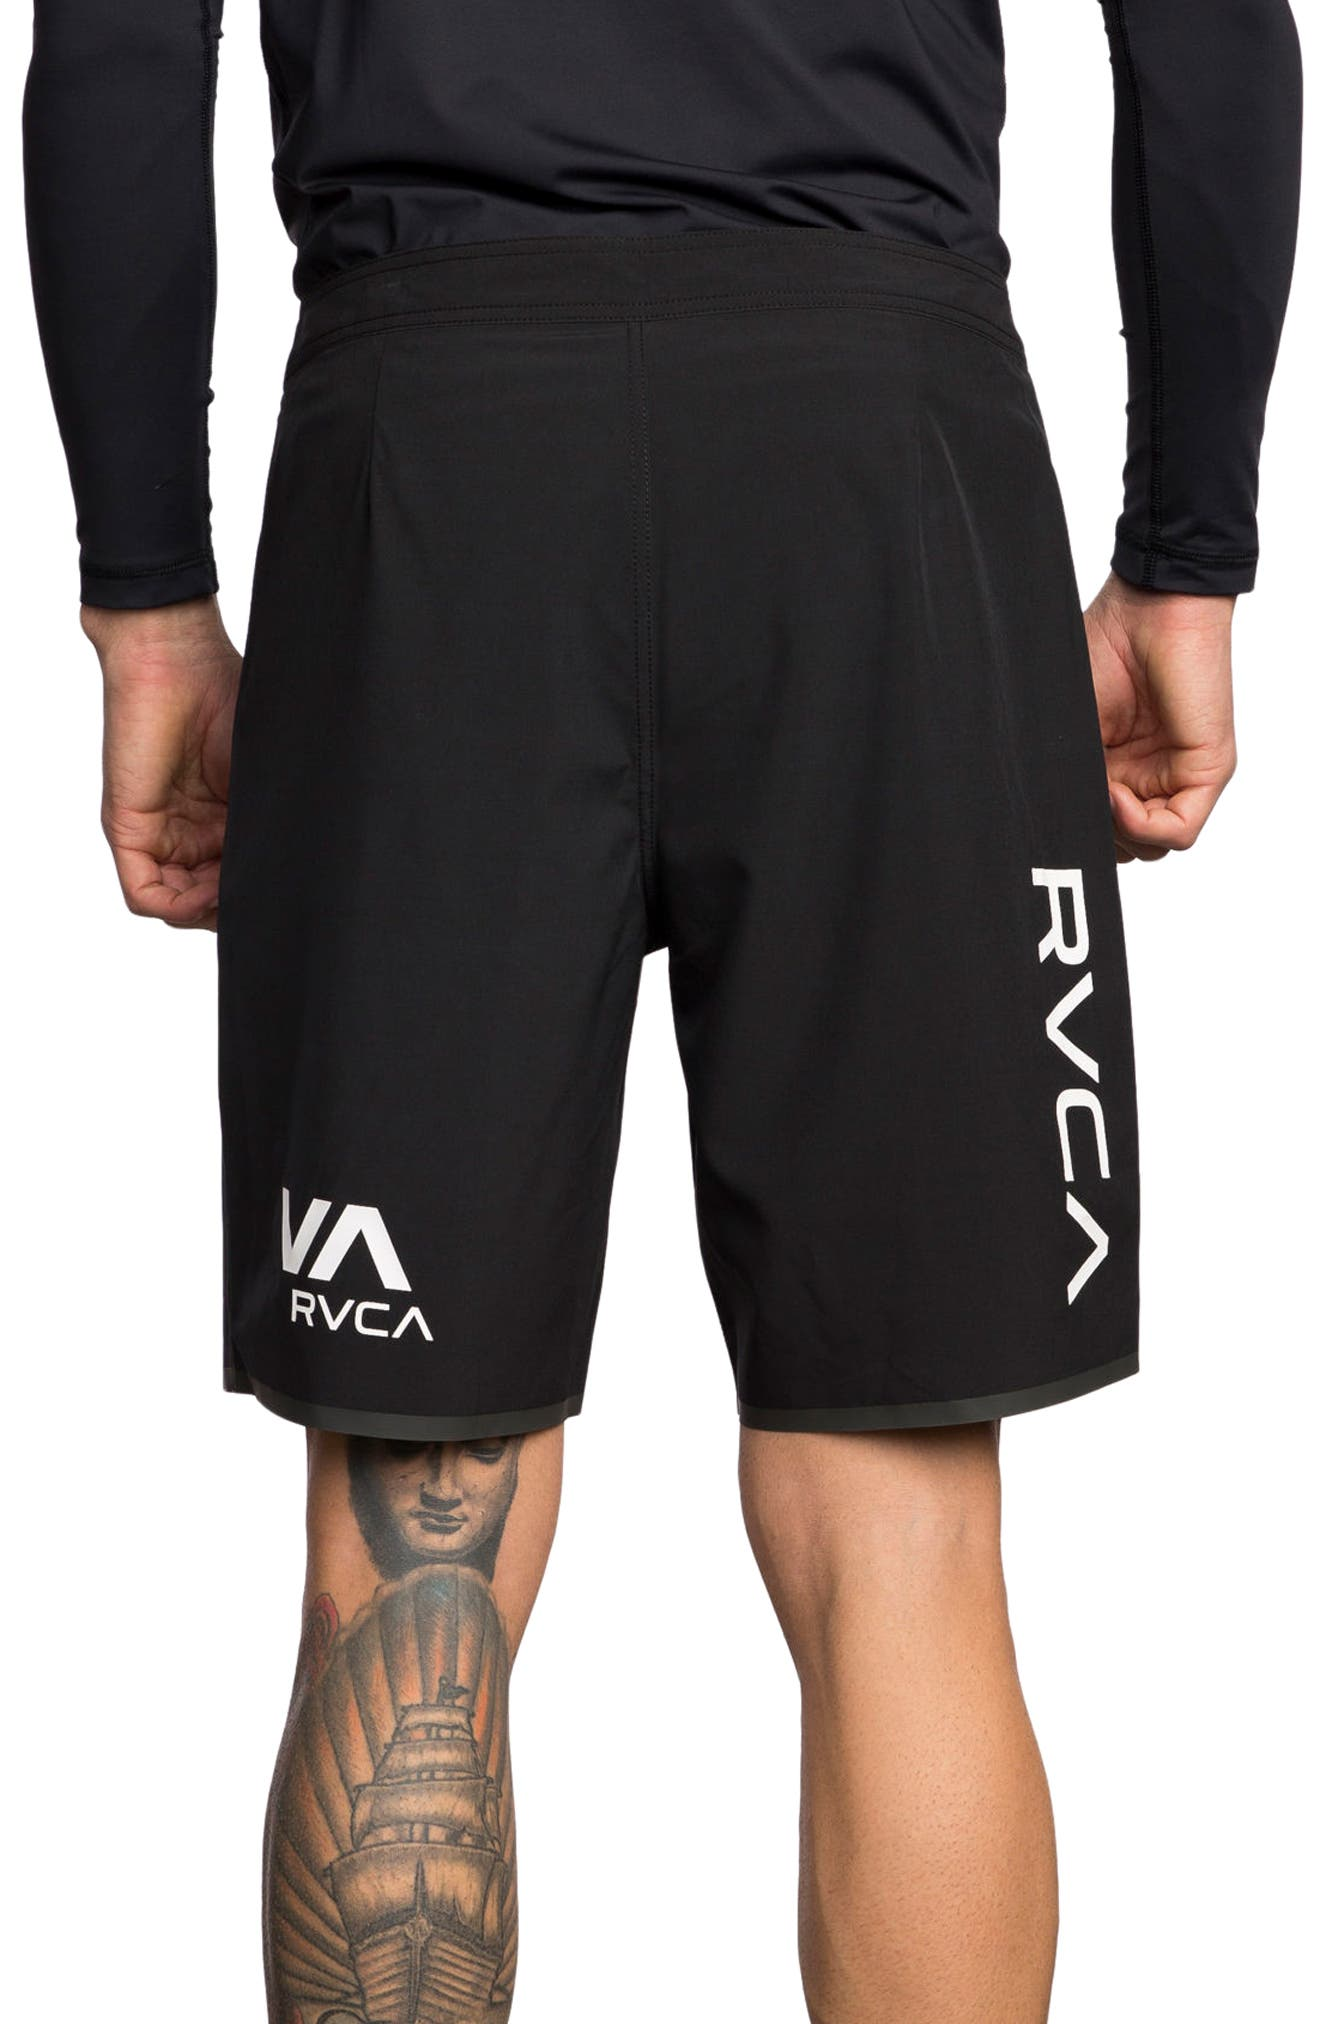 Staff III Dual Layer Performance Shorts,                             Alternate thumbnail 2, color,                             001